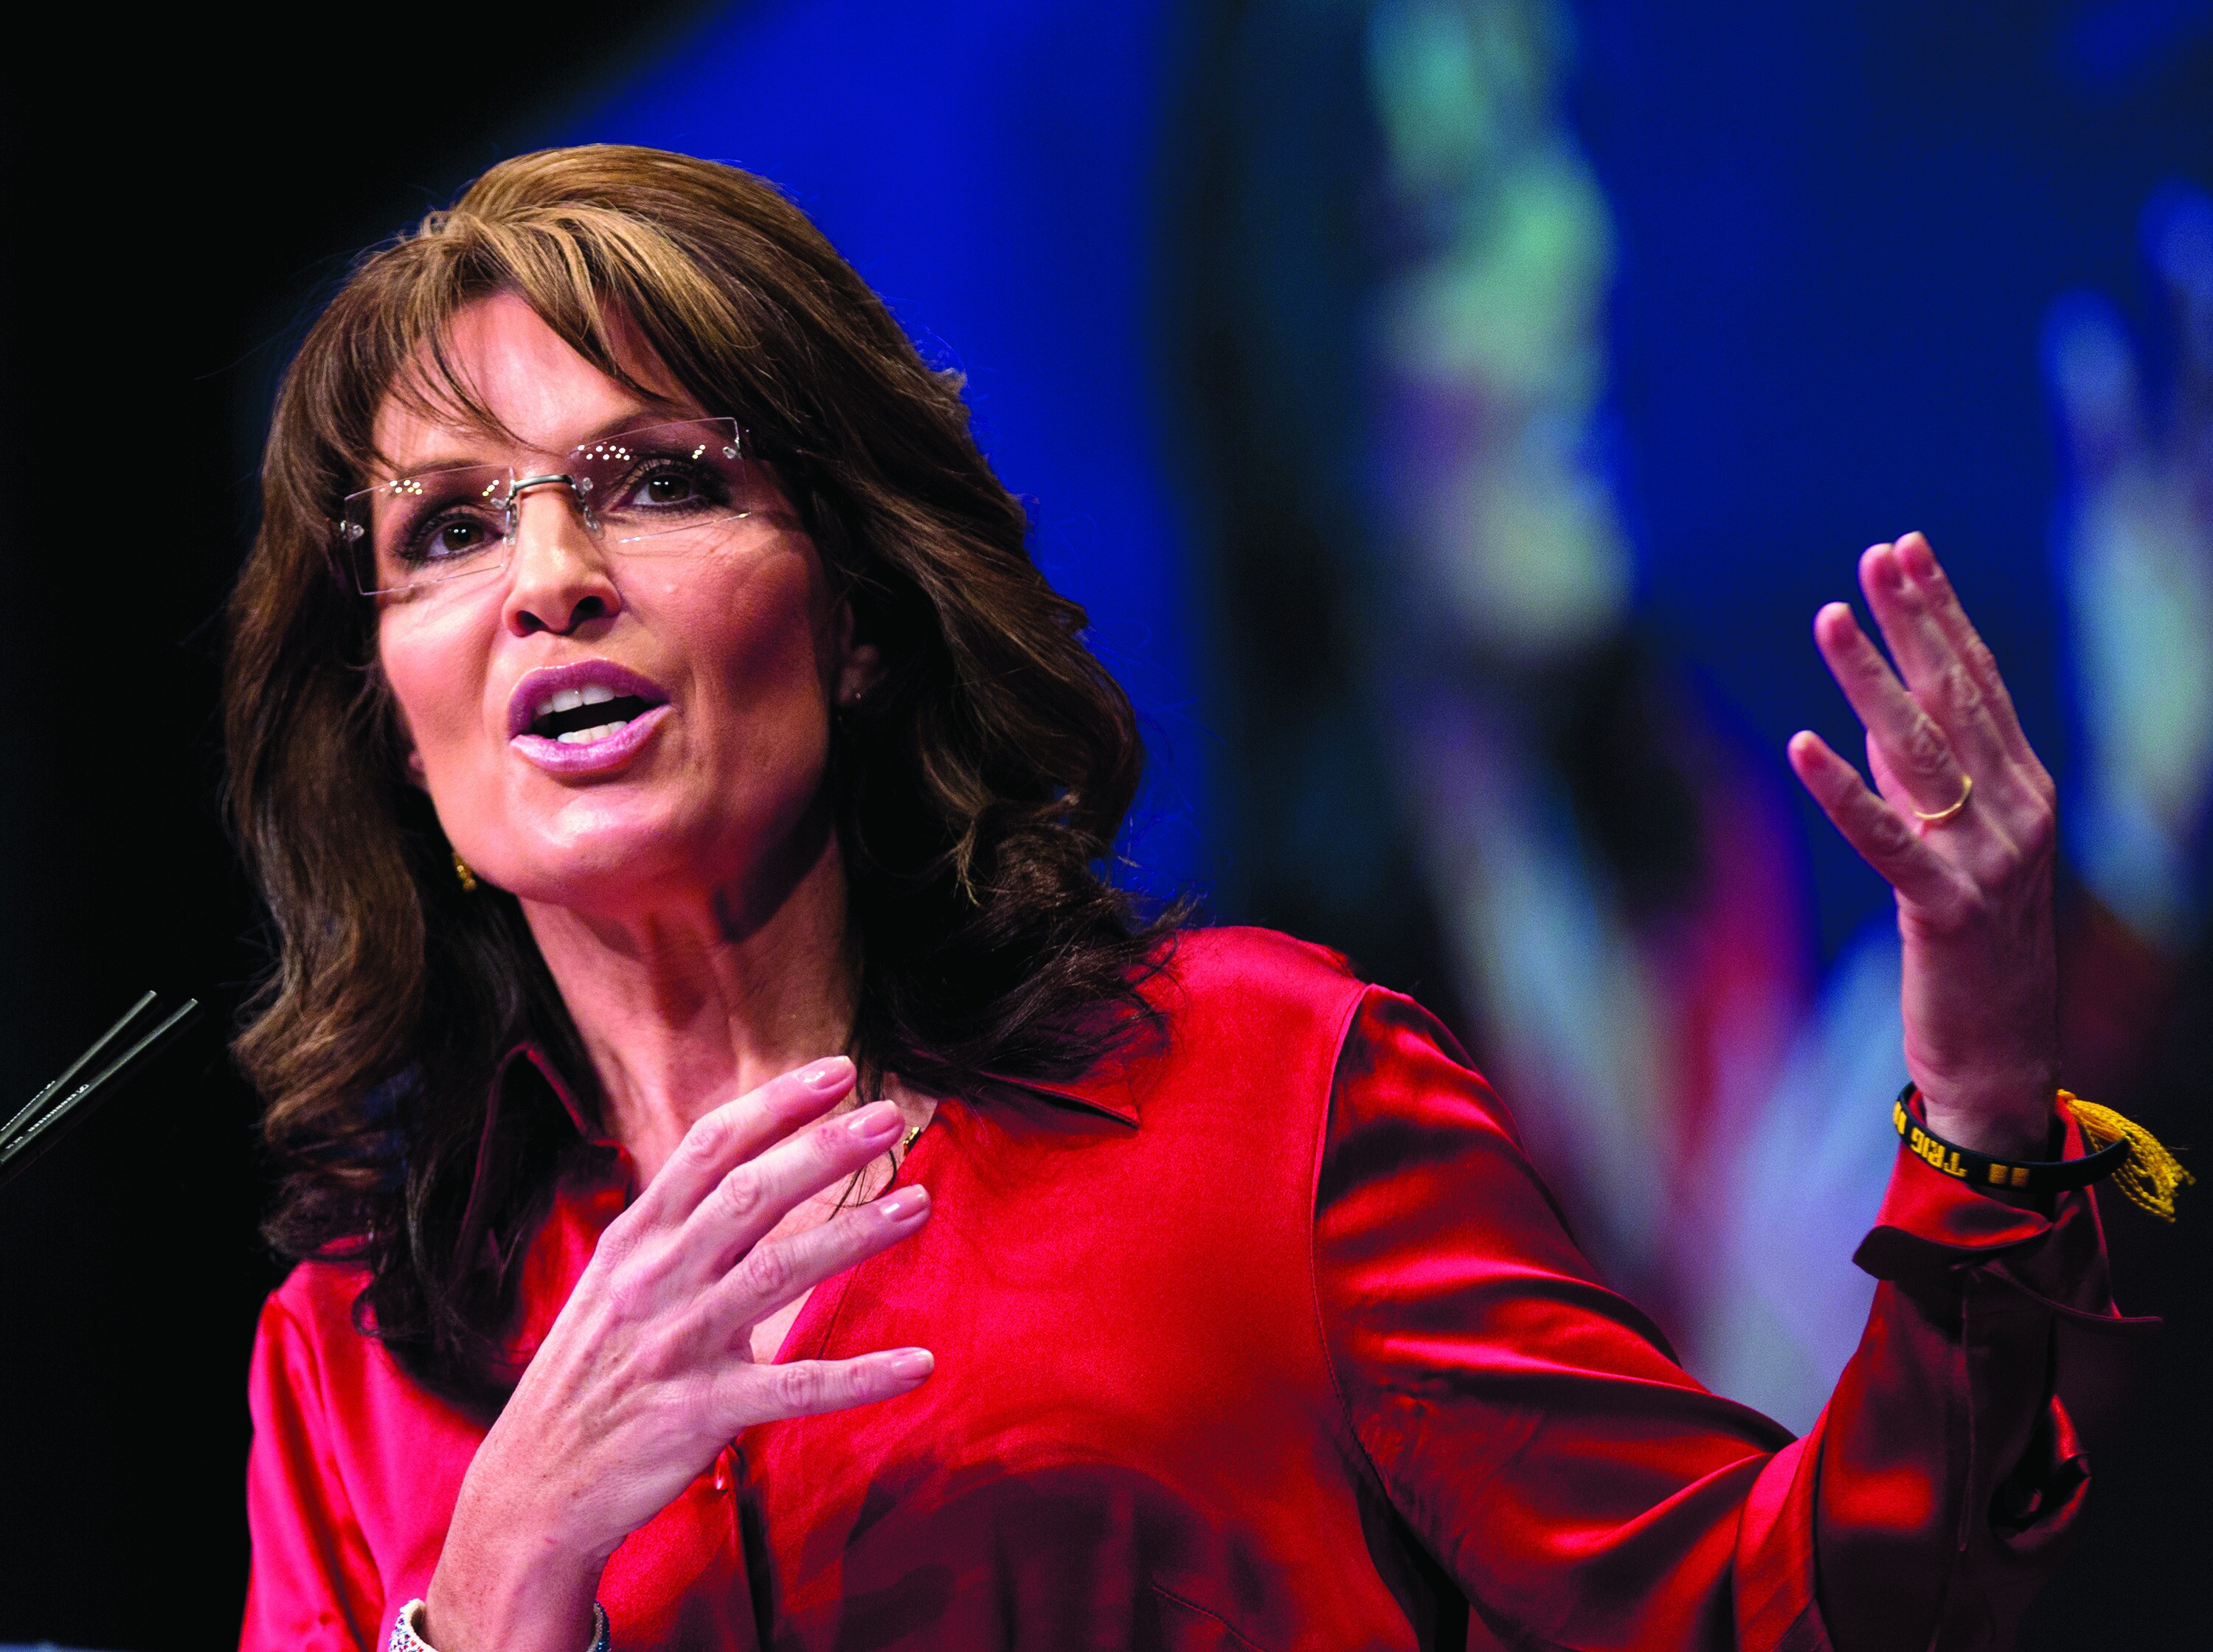 Sarah palin says she would run for the white house again in a sarah palin says she would run for the white house again in a heartbeat thecheapjerseys Choice Image